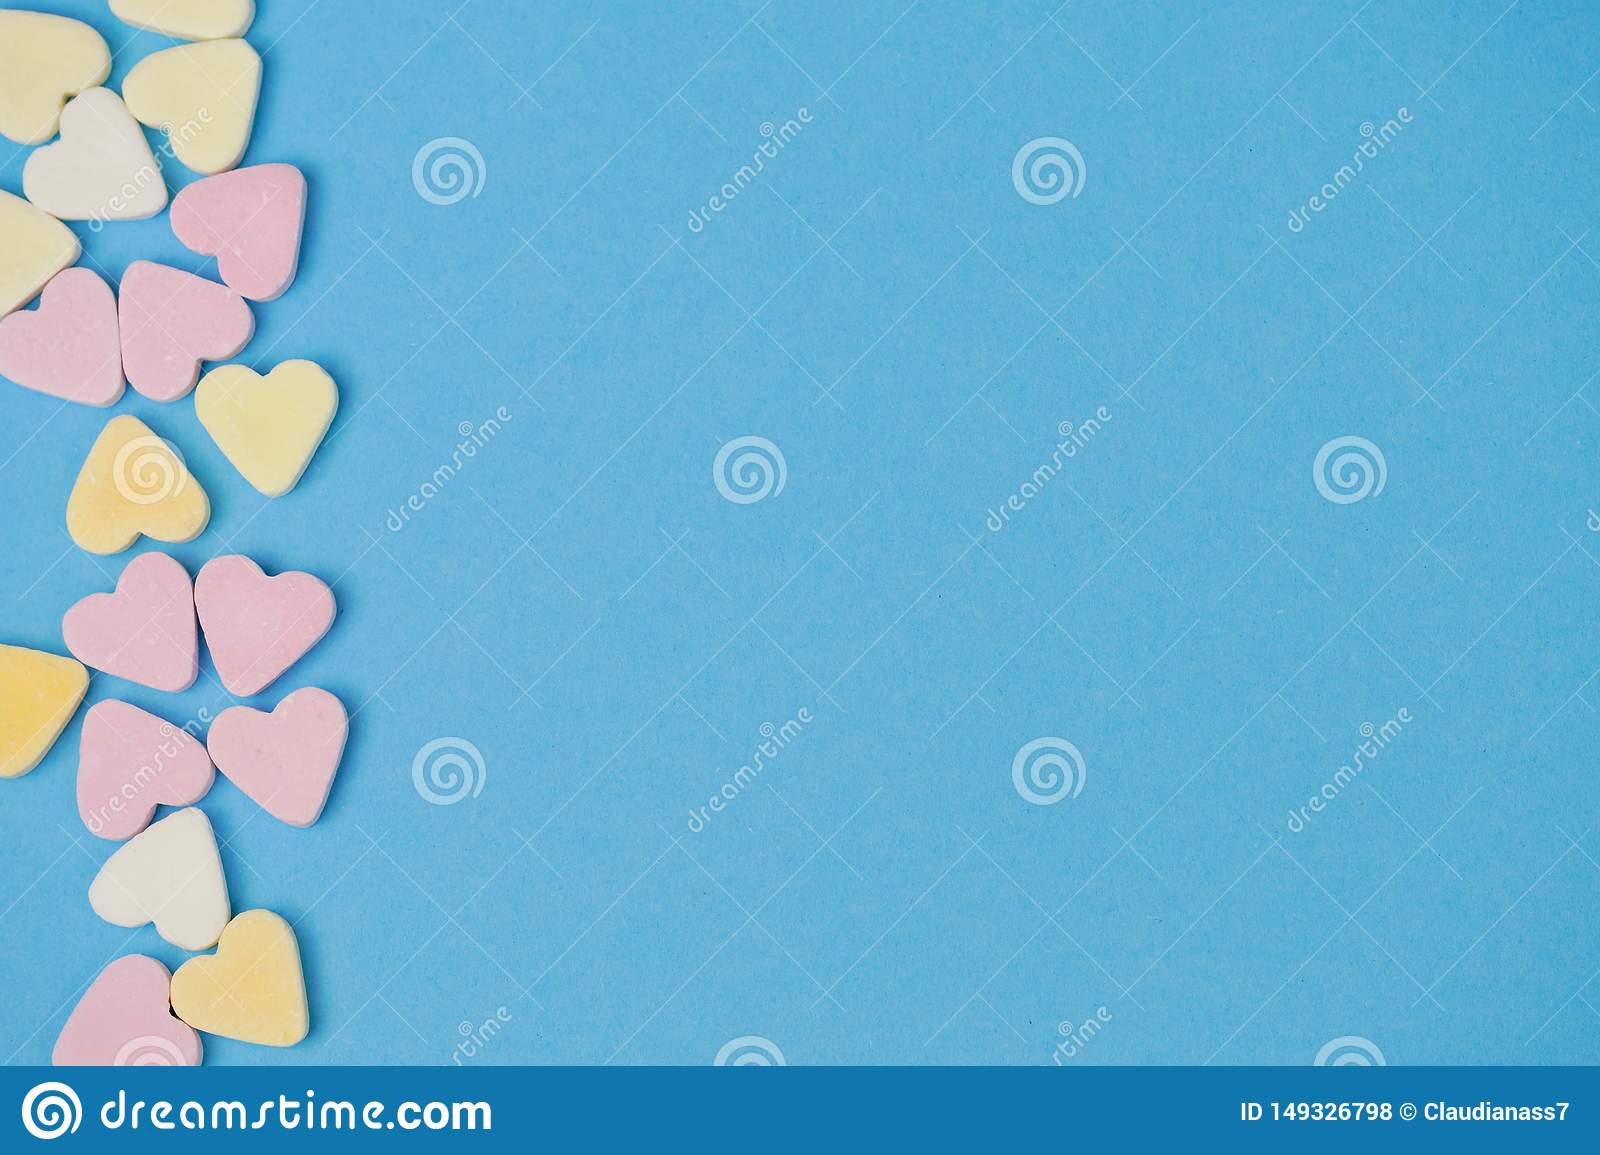 Sugar hearts on the left side on blue background for text